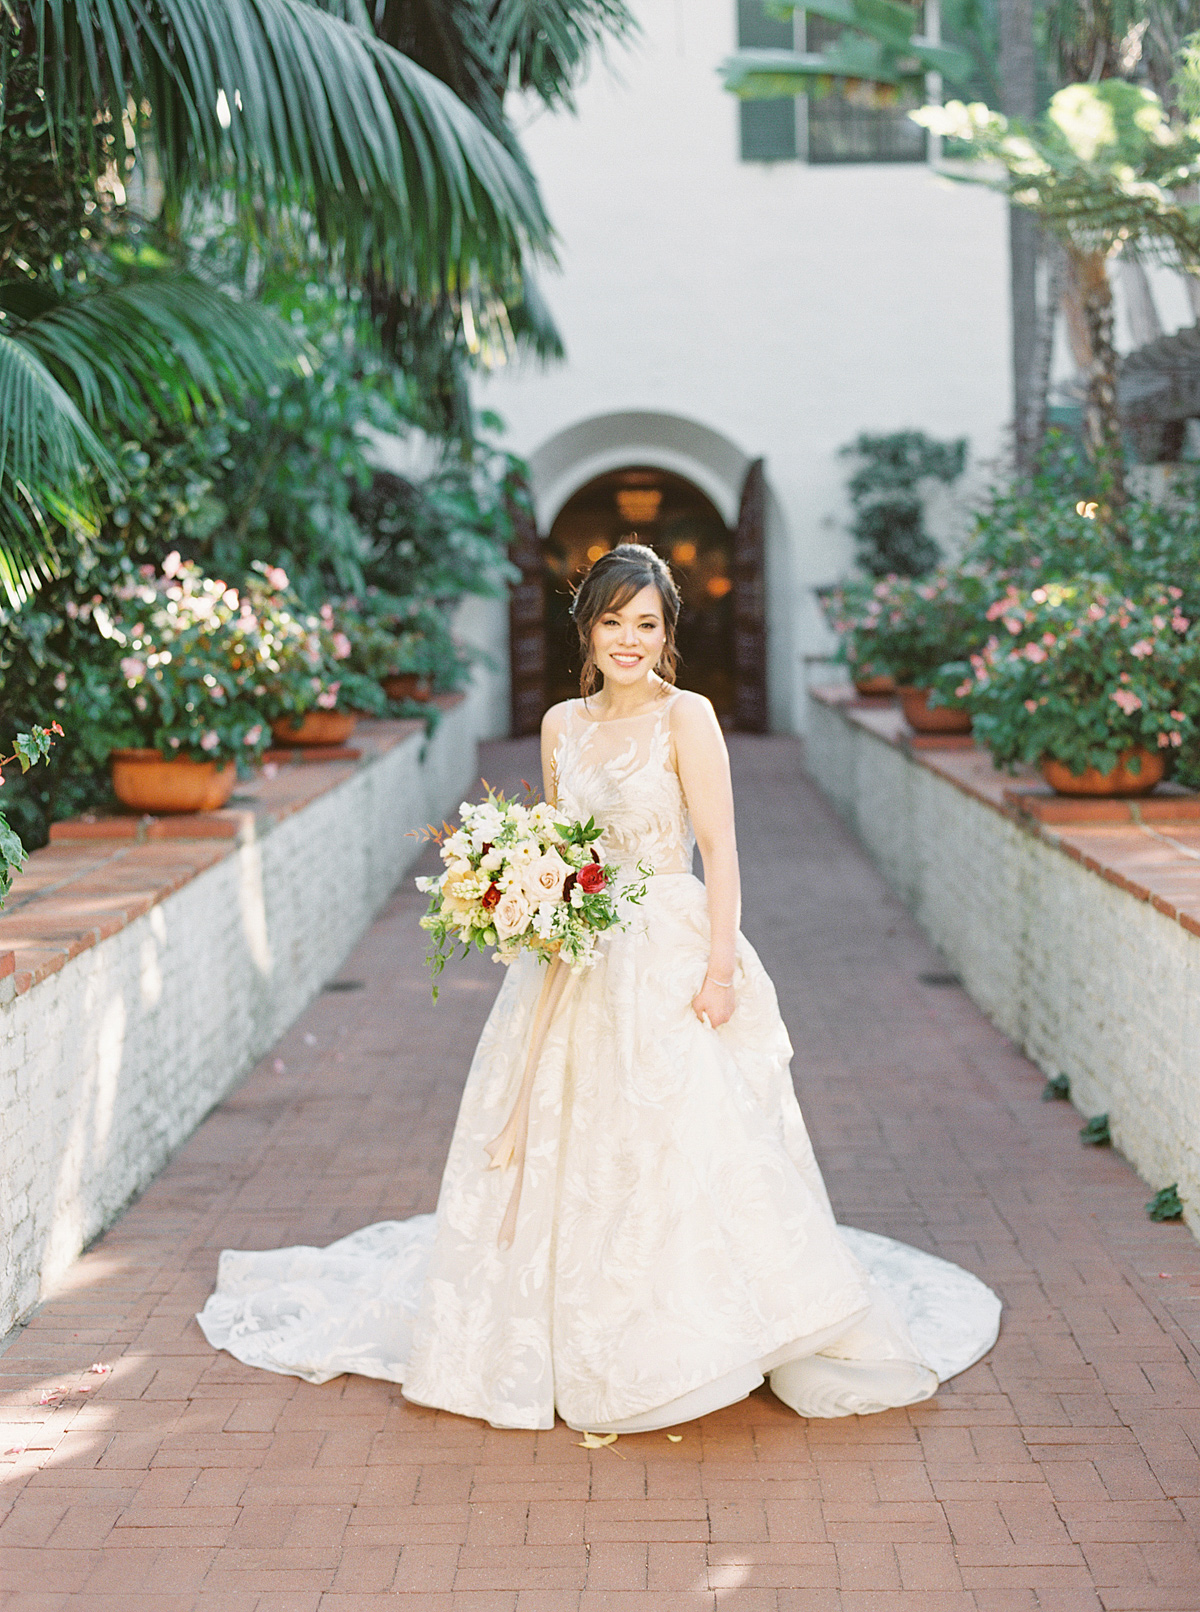 bride in cream dress standing in courtyard